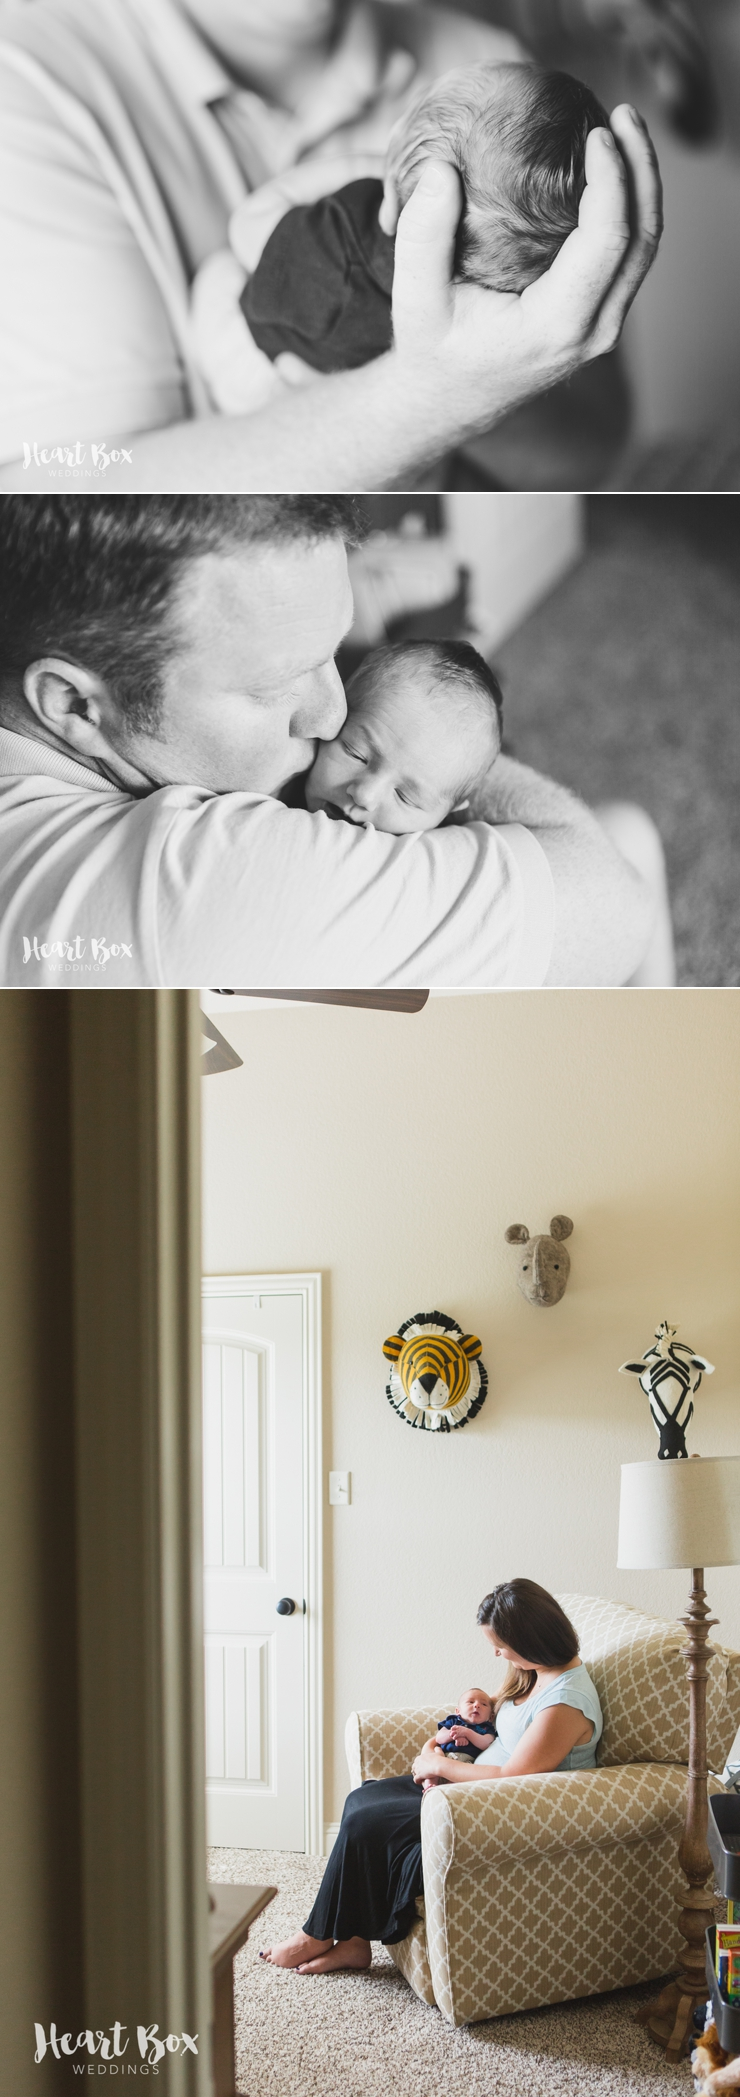 Colton Newborn Blog Collages 6.jpg